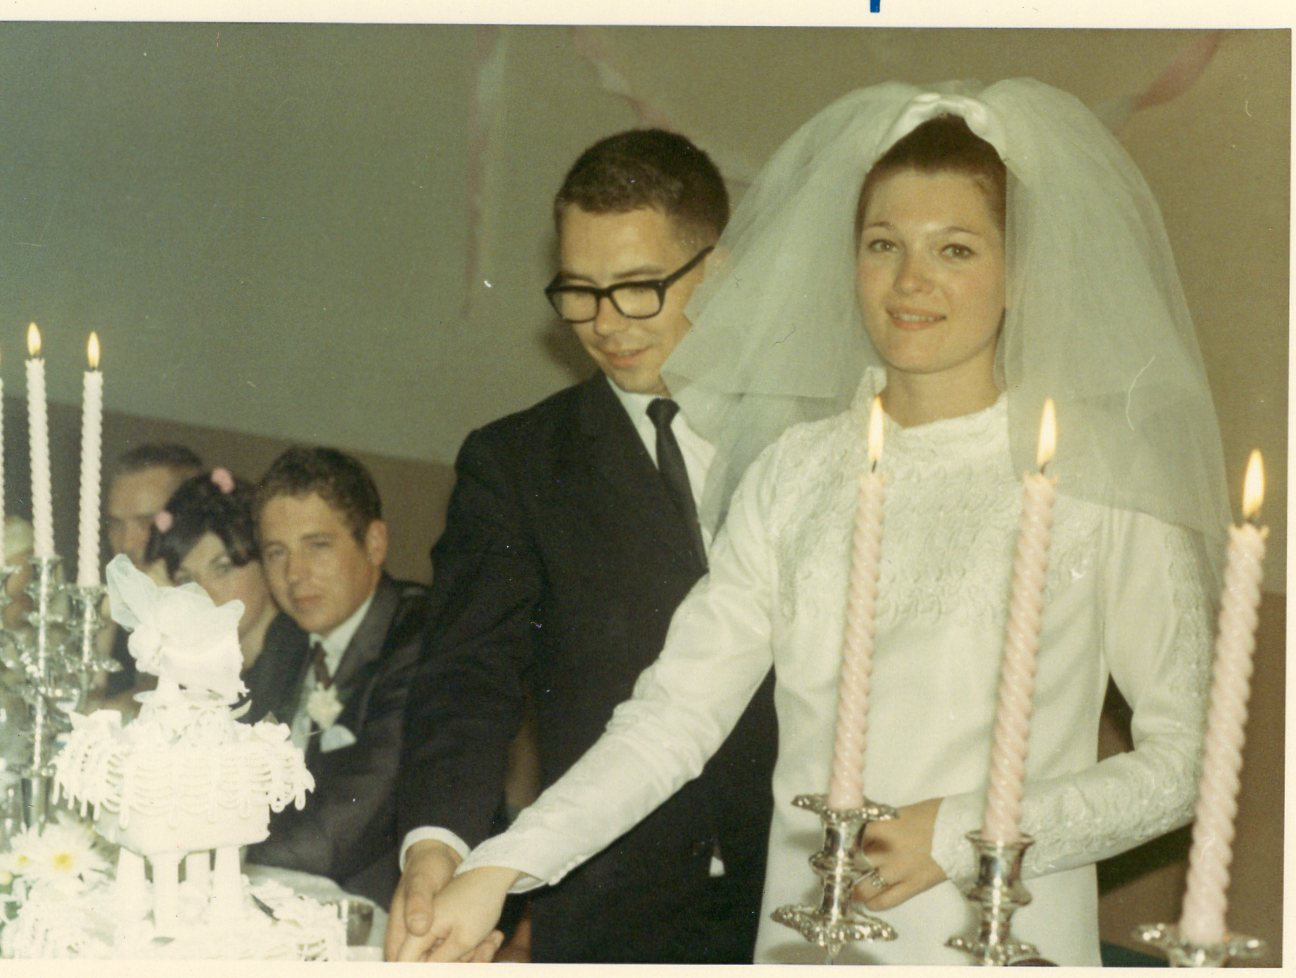 complicated love story-wedding image of a couple cutting a cake